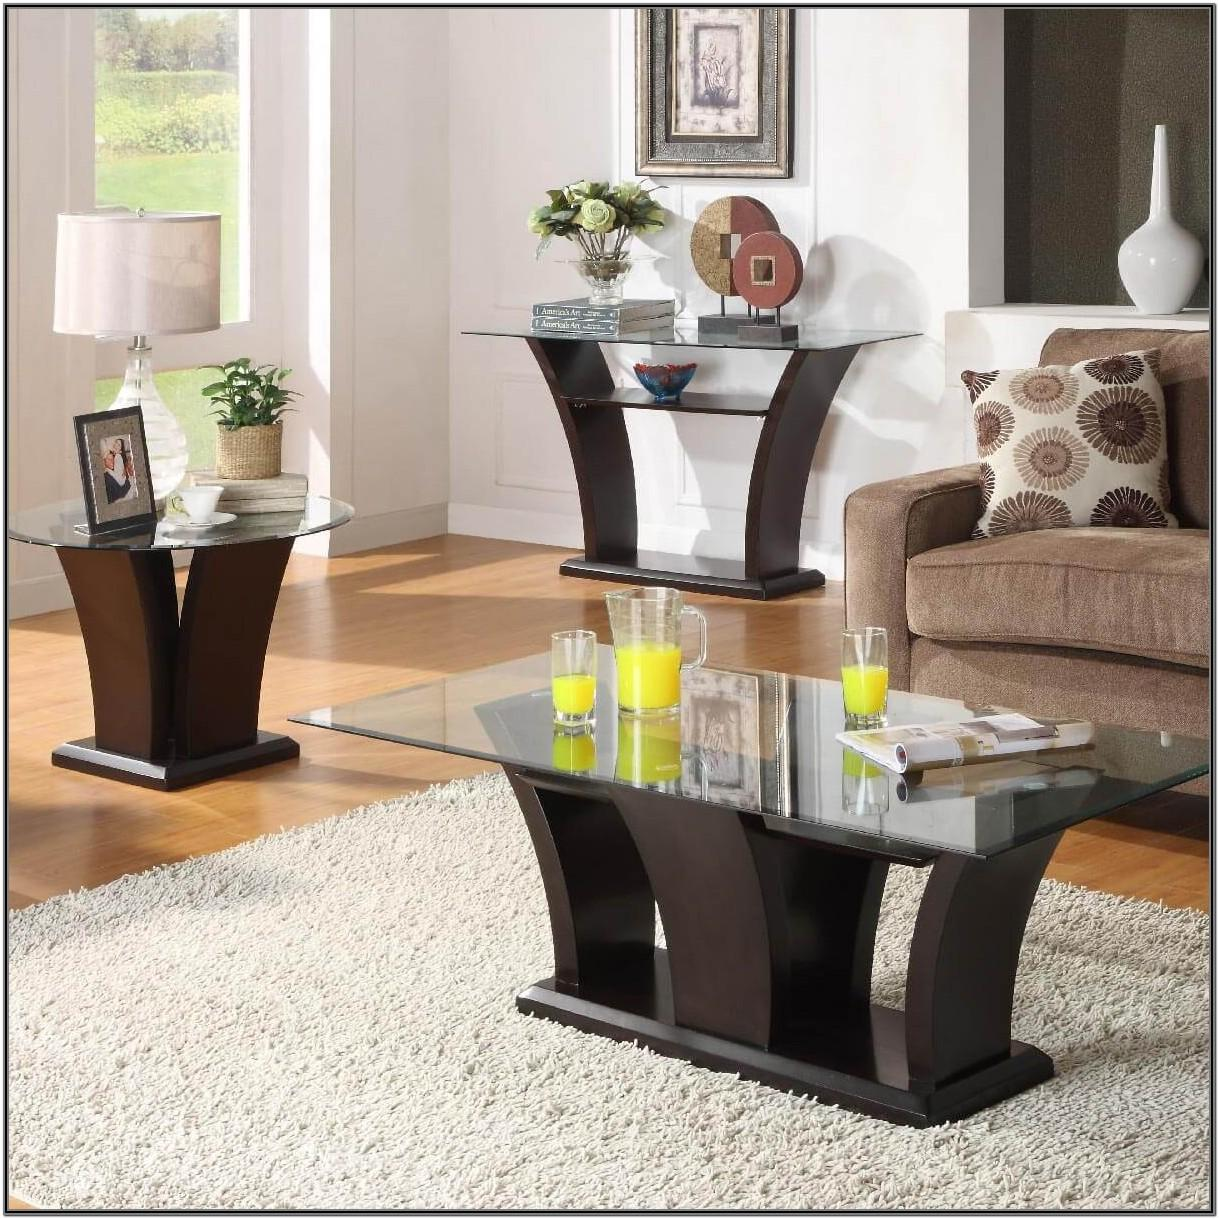 Living Room Sofa Table Decor Ideas